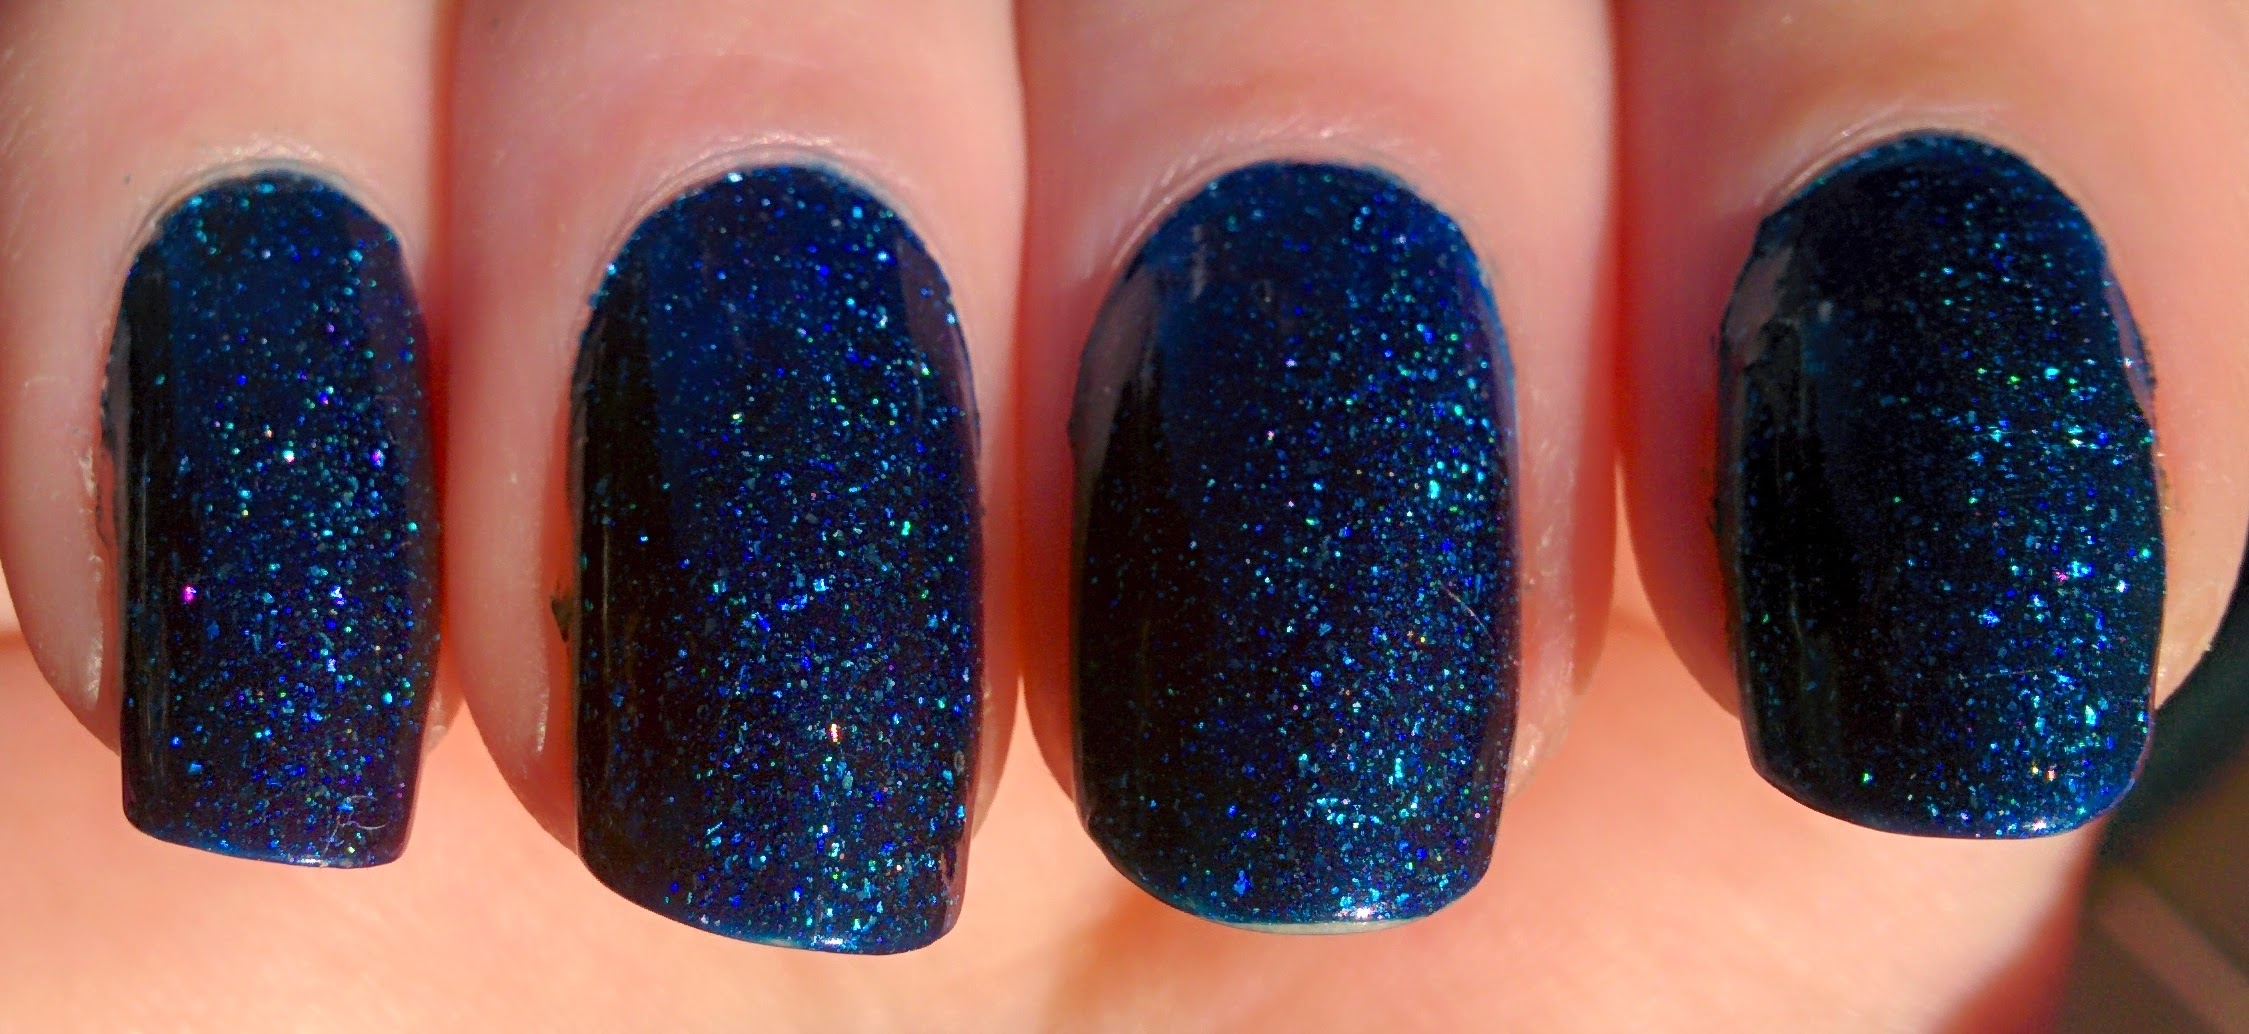 Notes on nails – Cosmos (for Cosmos) | forever in fibre